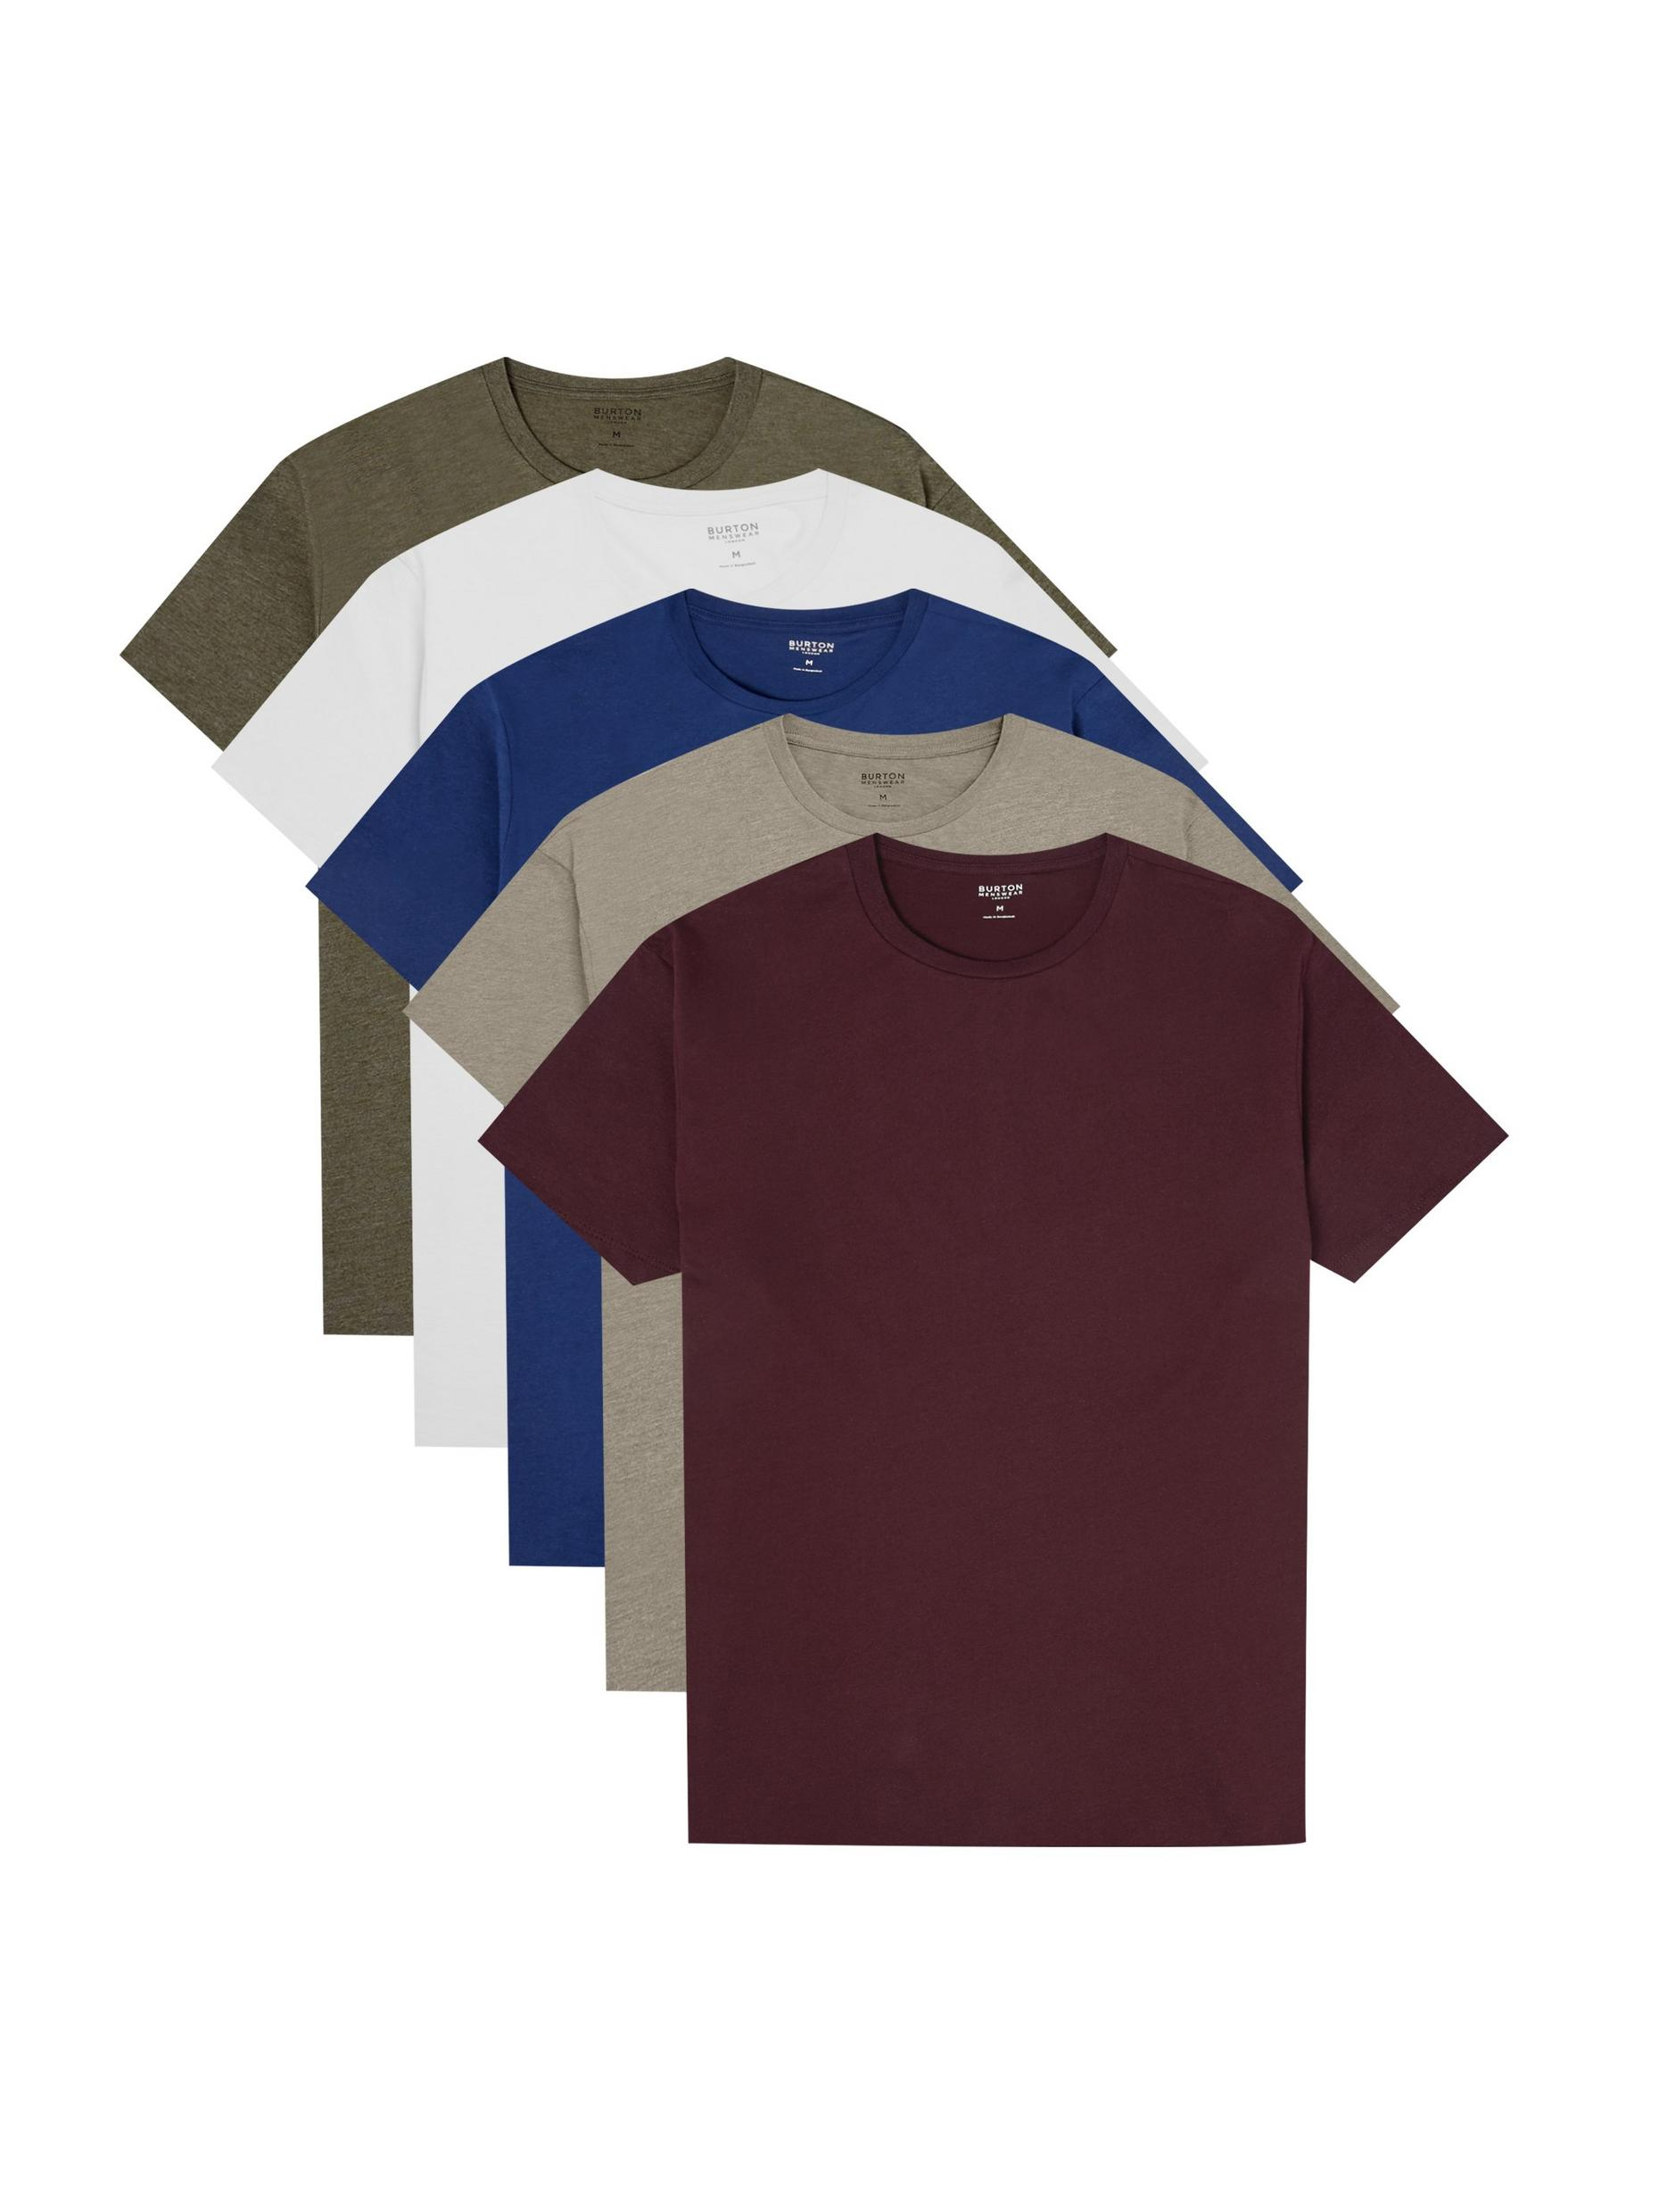 5 Pack Burgundy; Stone; Indigo; Khaki and White Or